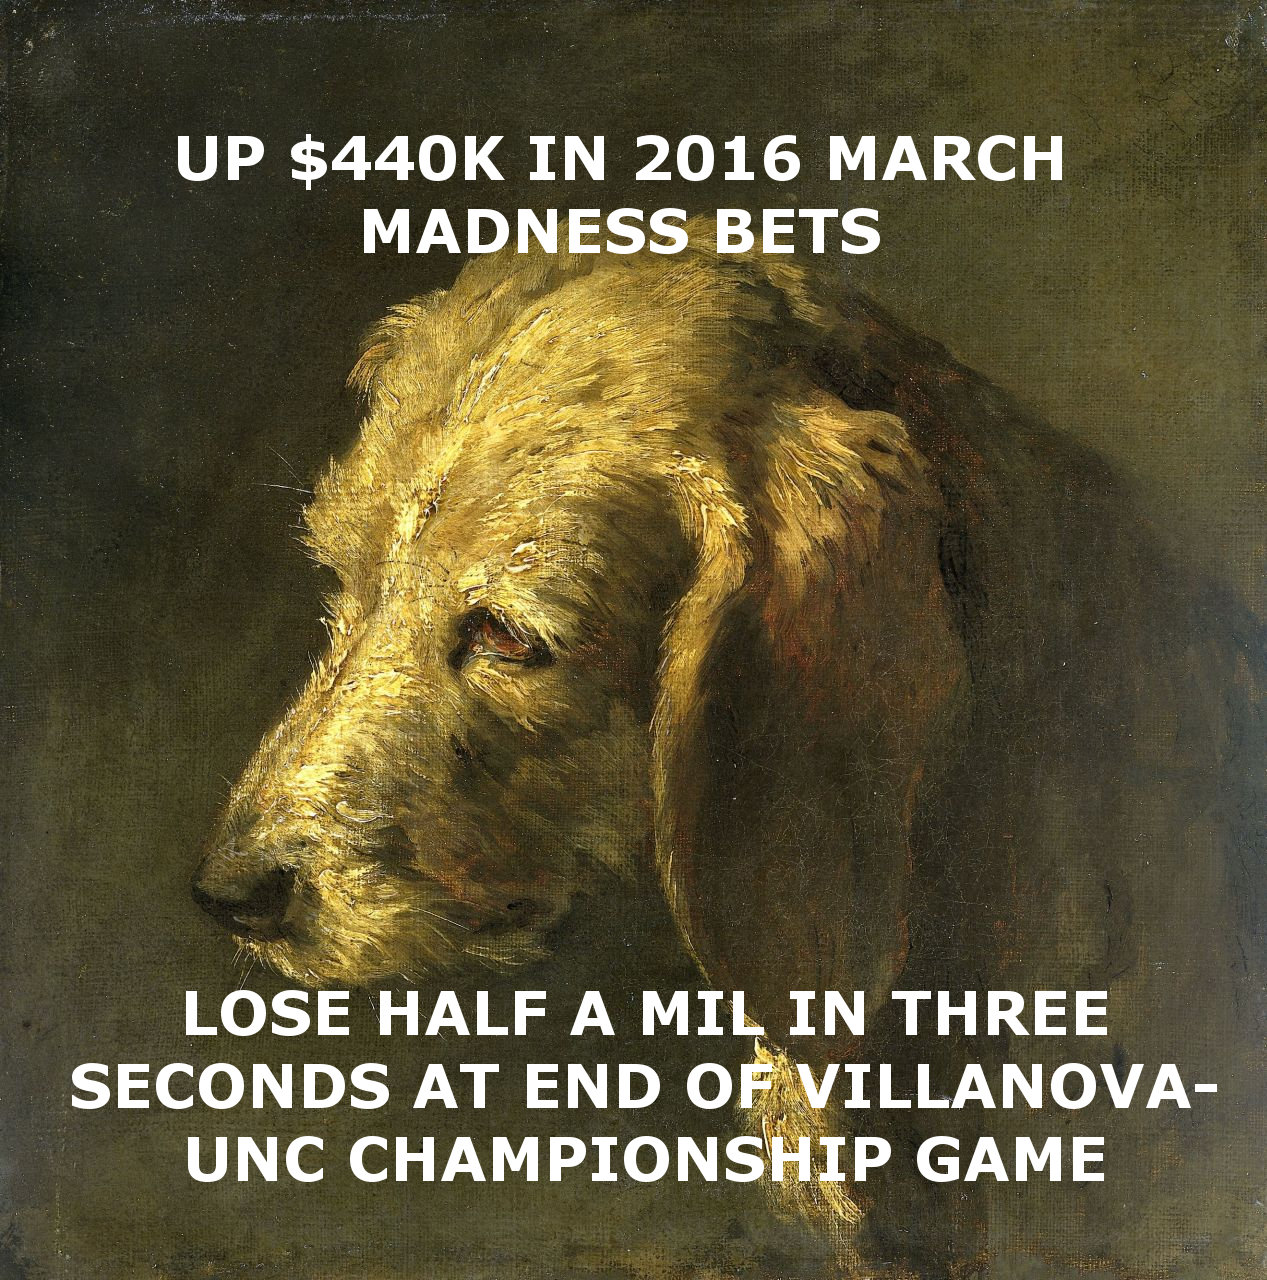 up 440k in 2016 march madness bets